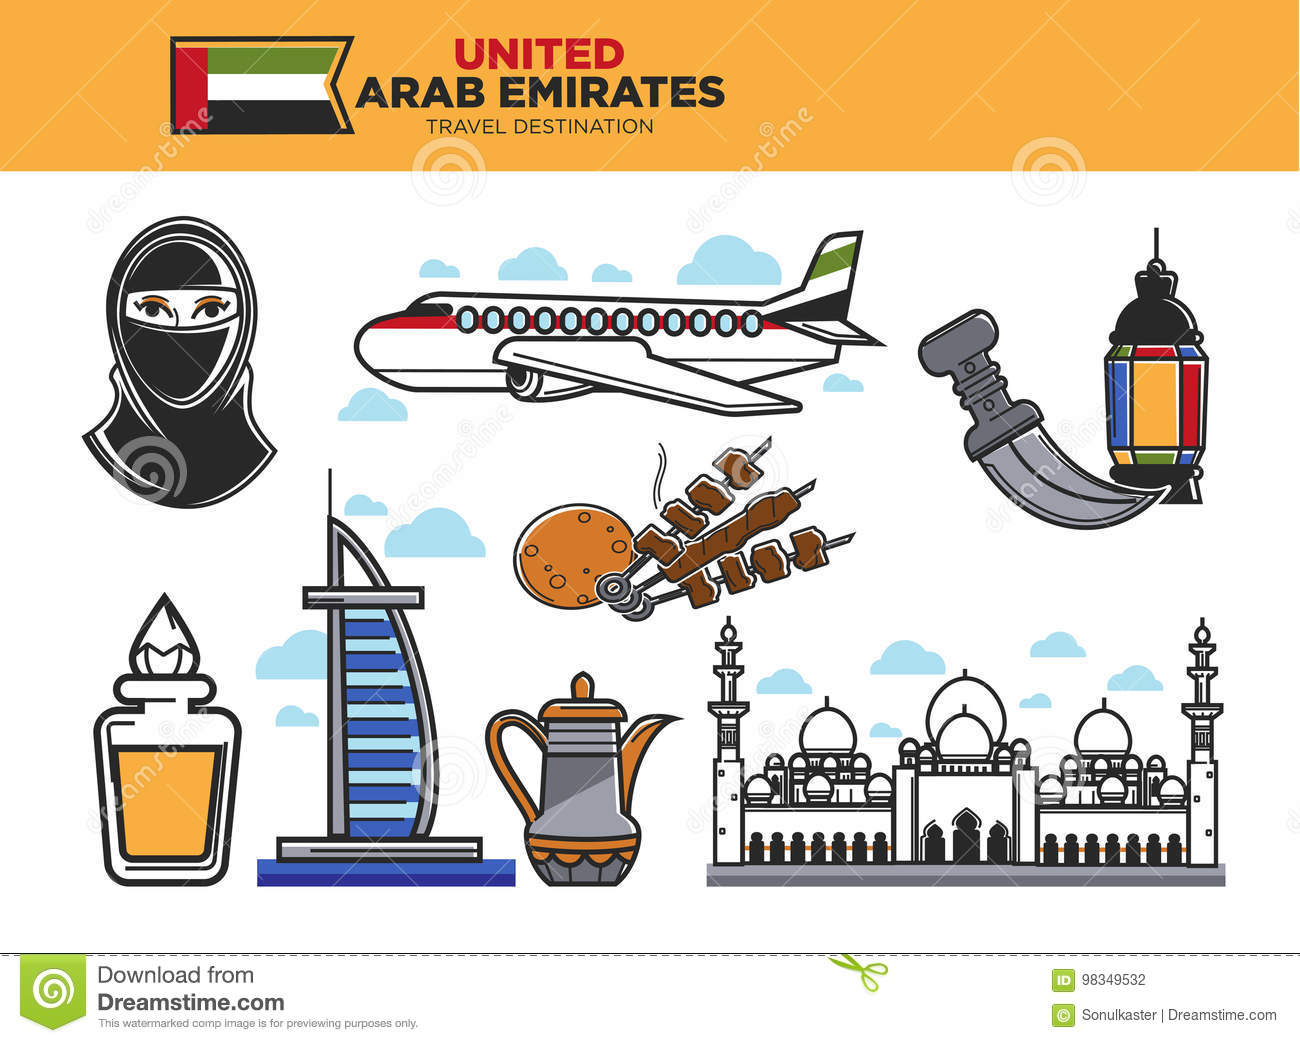 United arab emirates symbols stock vector illustration of united arab emirates travel destination poster with country symbols stock photography biocorpaavc Images